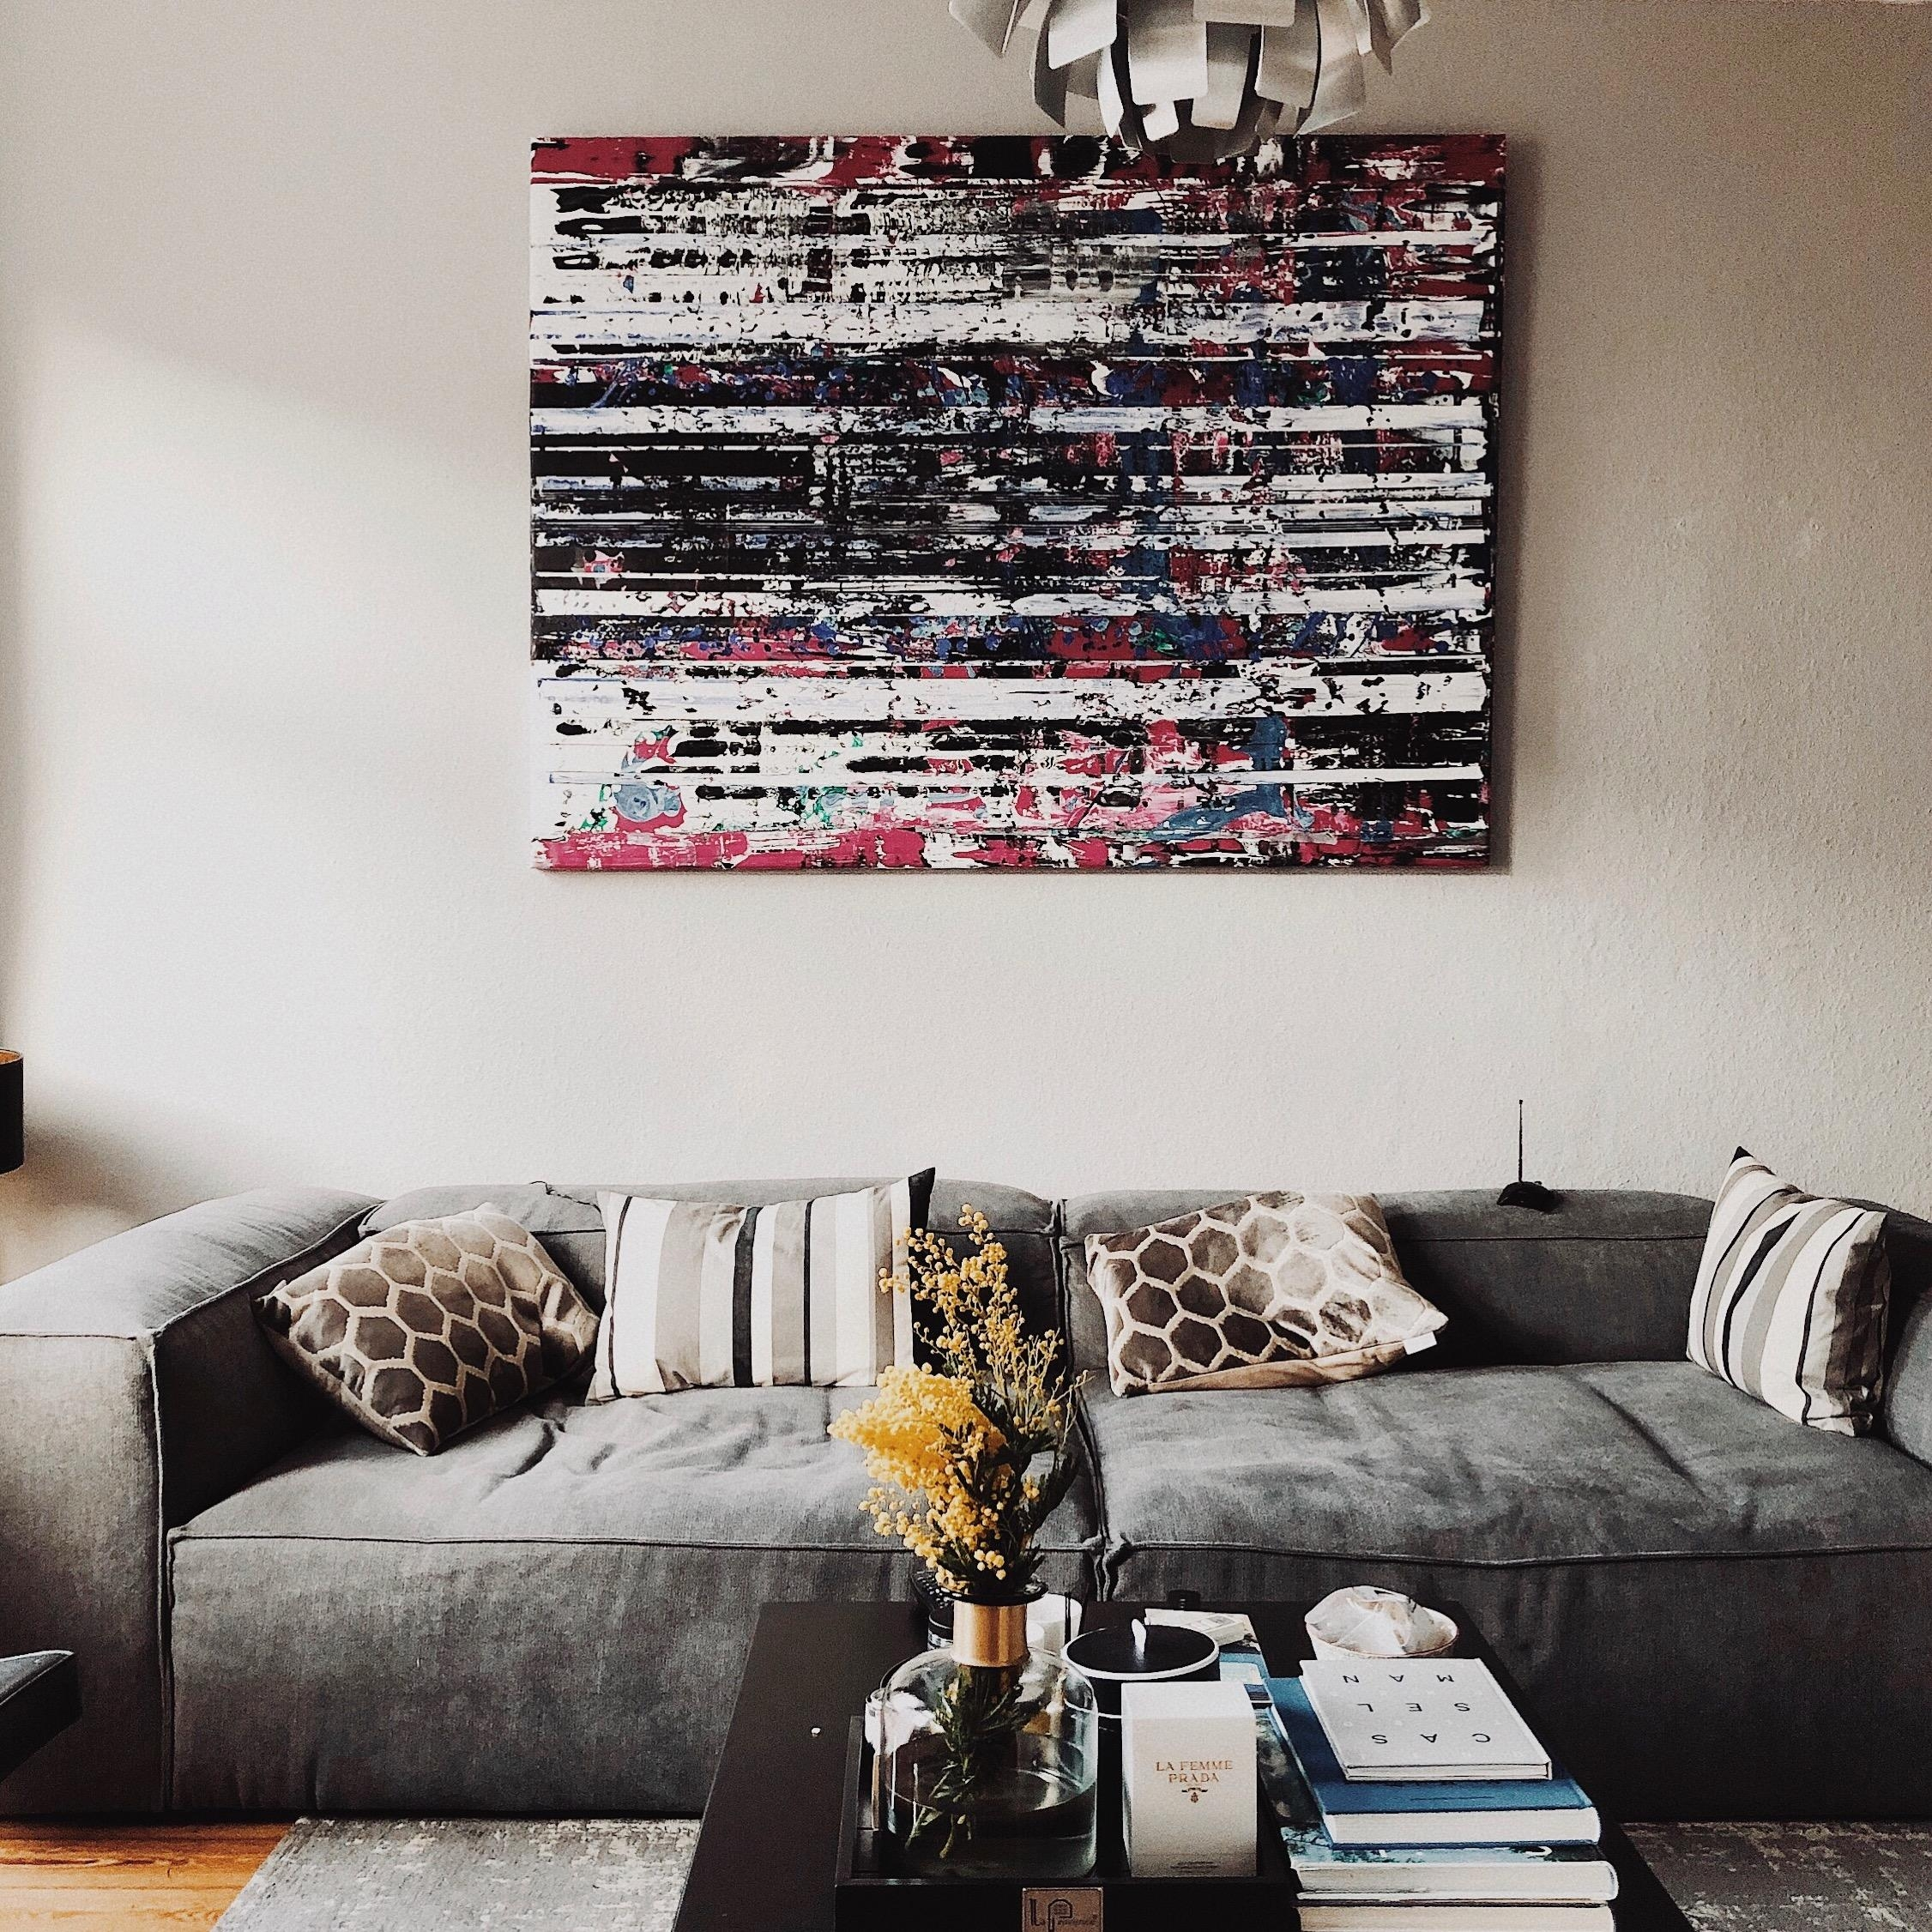 Mimosa #flowers #living #interior #danishdesign #couch #couchtable #livingroom #couchstyle #blumen #art #blumen #bild